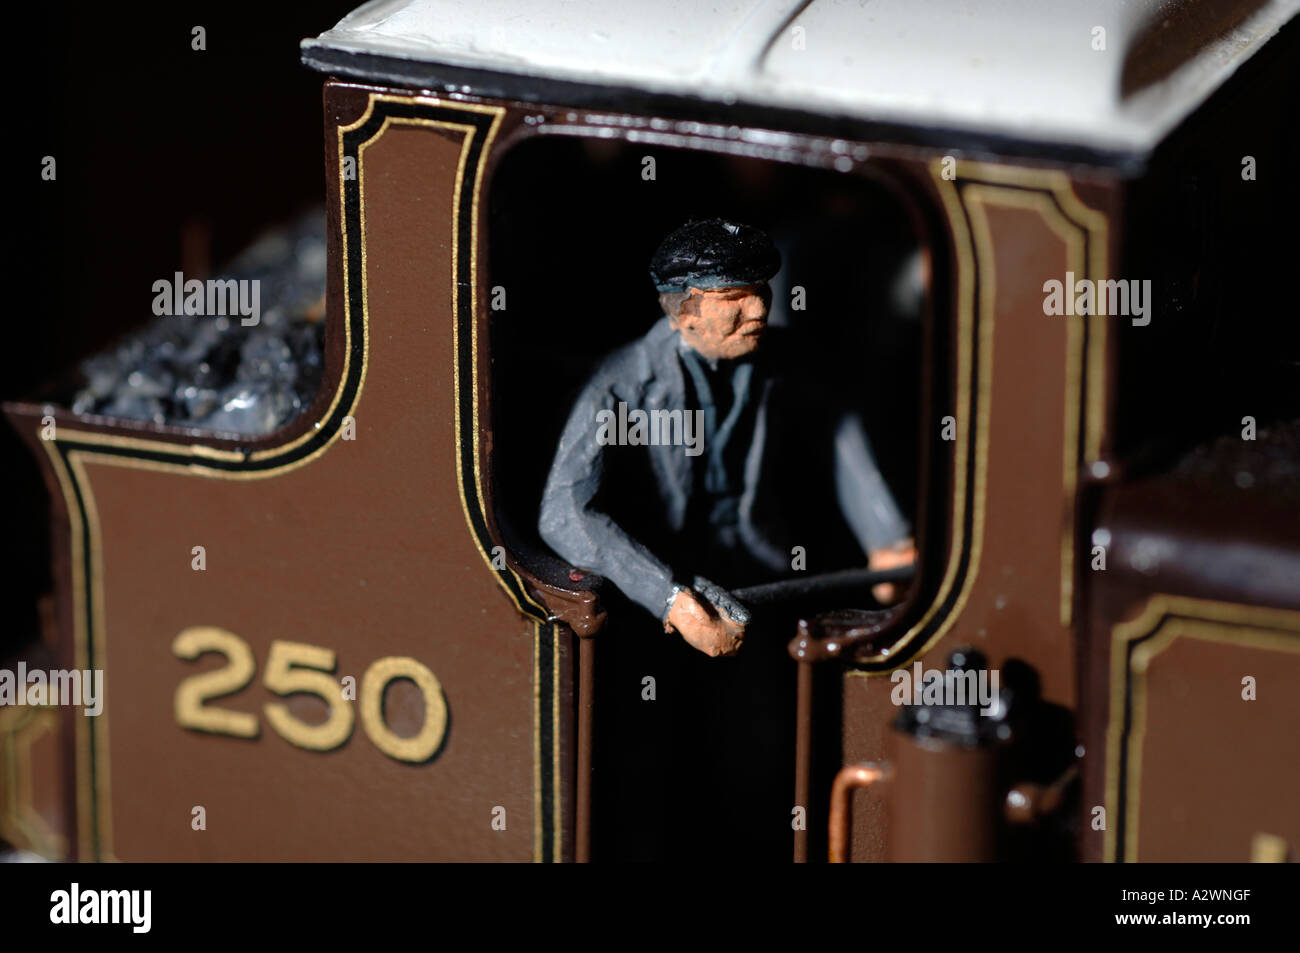 Close up of a train driver on a model railway set Stock Photo